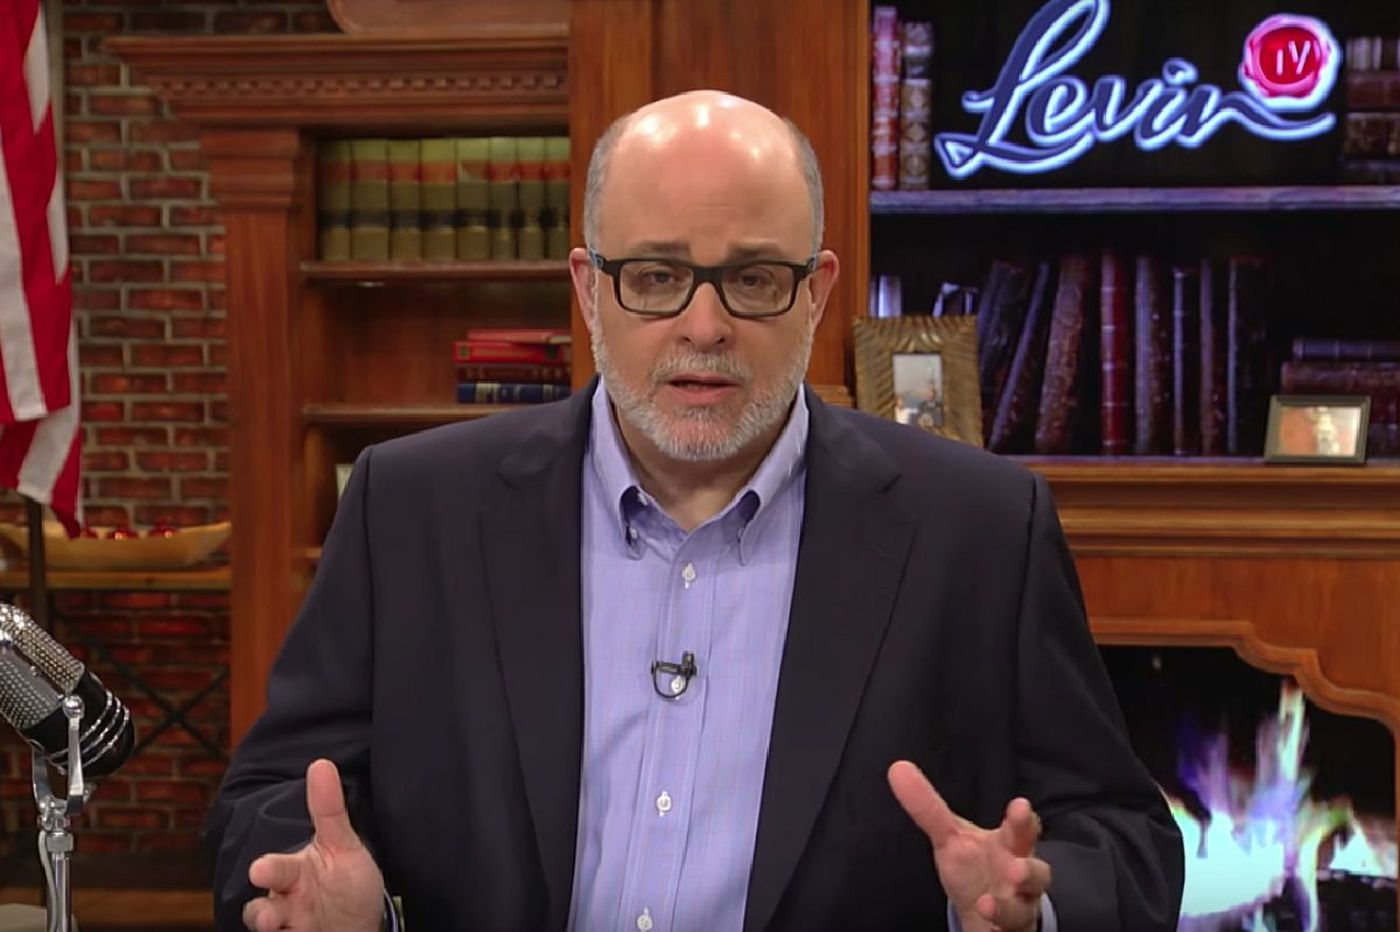 Conservative talker Mark Levin getting his own show on Fox News